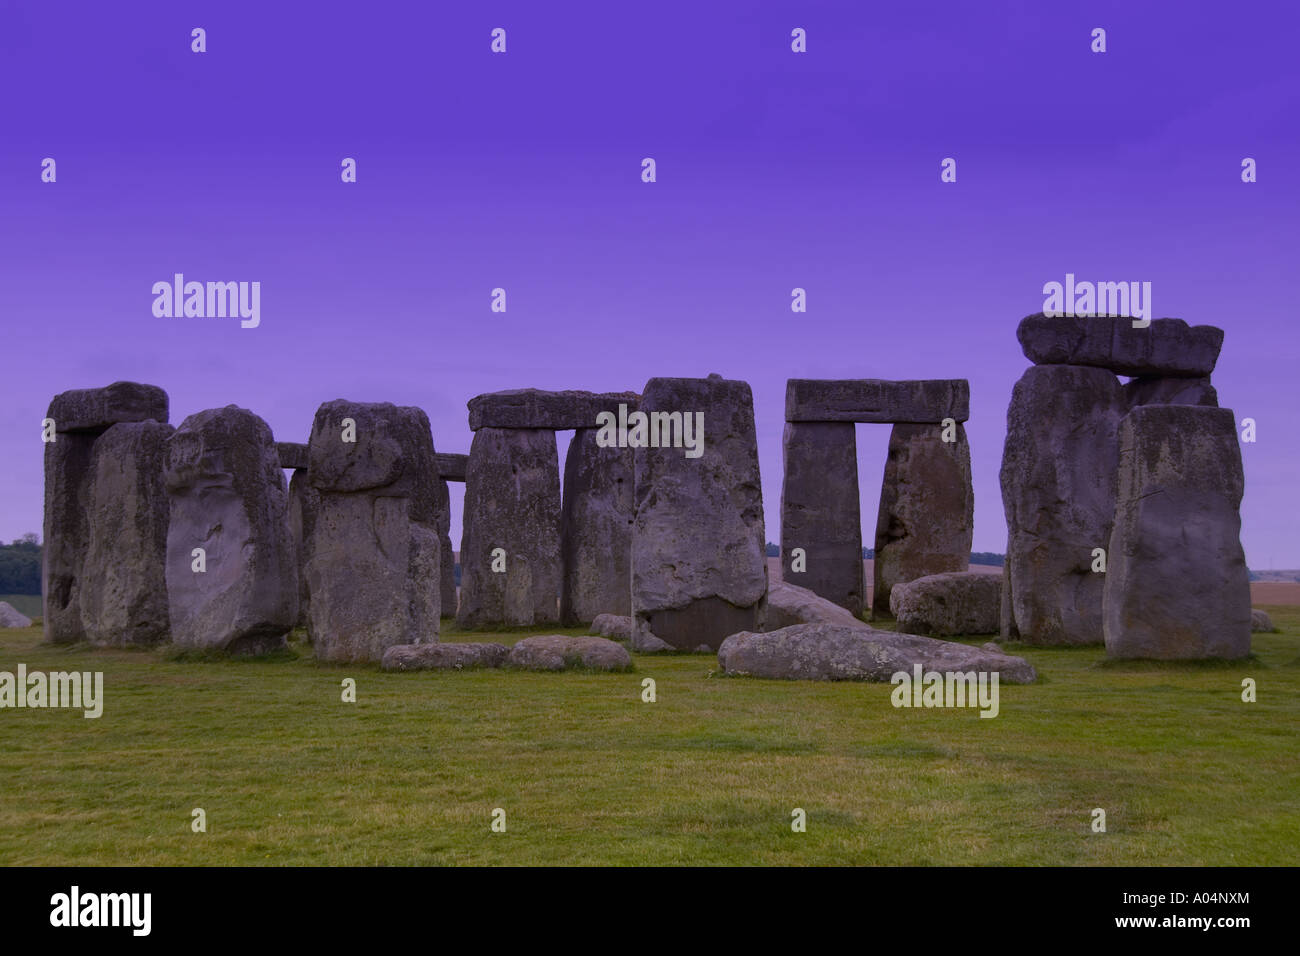 The world famous Stonehenge monument in England Great Britian - Stock Image